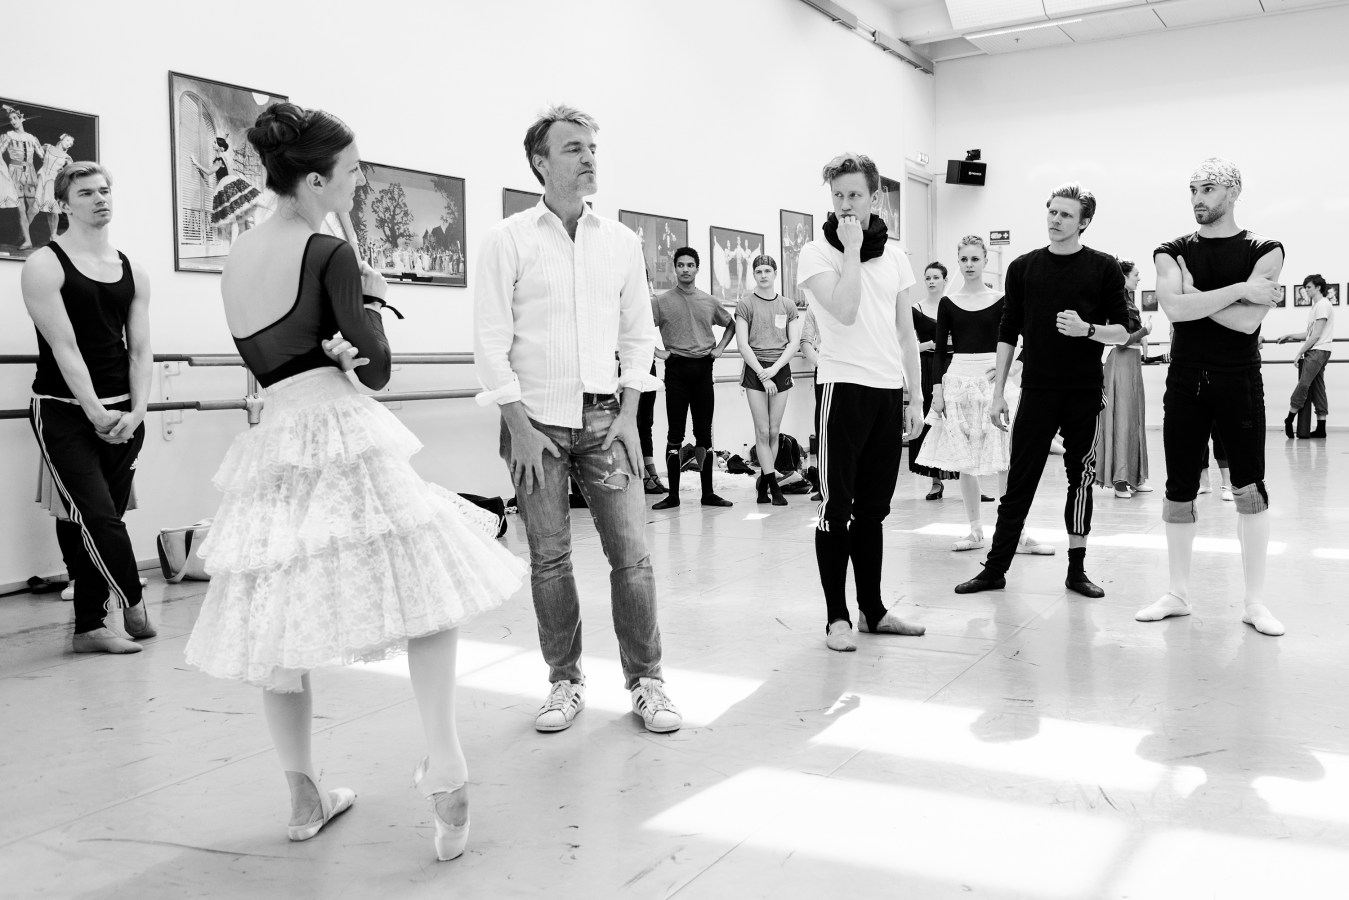 Artistic leader Nikolaj Hübbe (center with jeans) instructs dancers Gregory Dean, J'aime Crandall, Jón Axel Fransson, Ida Praetorius, Marcin Kupinski and Jonathan Chmelensky in an early rehearsal of Don Quixote, 2016. In Hübbe's era, the ballet has gone from being an elitist and closed world, to become a dance that many Danes have taken into.